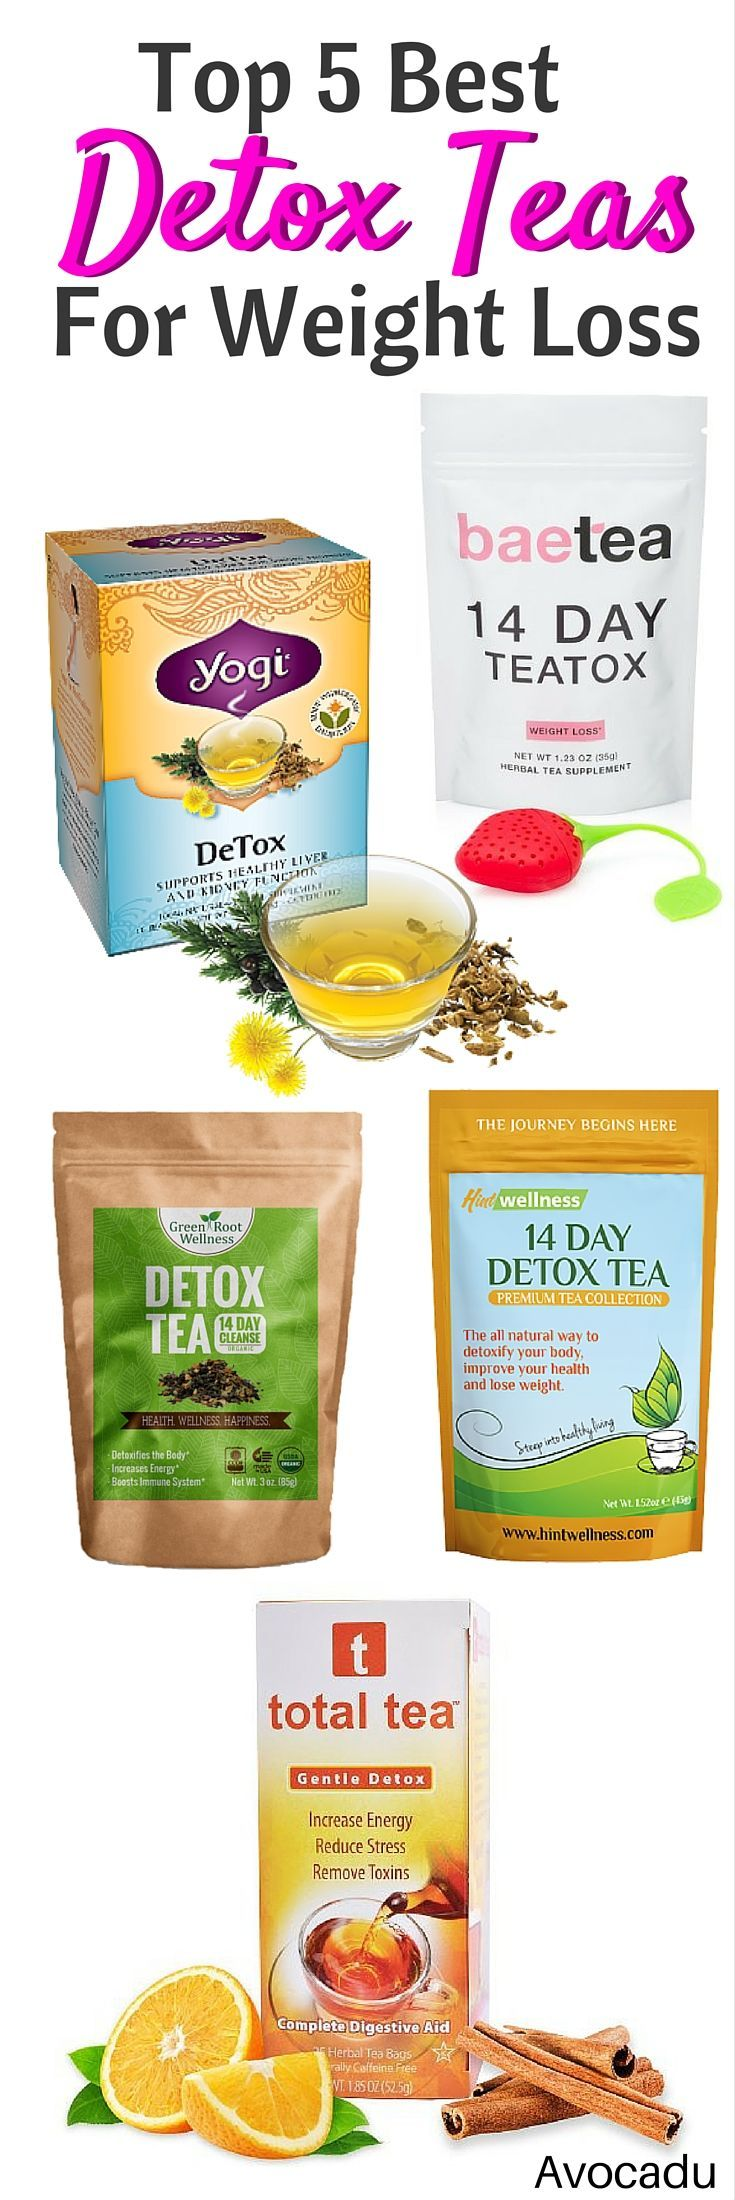 On the hunt for a good detox tea? They can be very powerful when used alongside clean eating to rid yourself of excess toxins and weight. http://thelittlehealthcompany.com/blogs/beauty/63664197-does-teatox-work-as-a-weight-loss-tea #teatox #weightloss